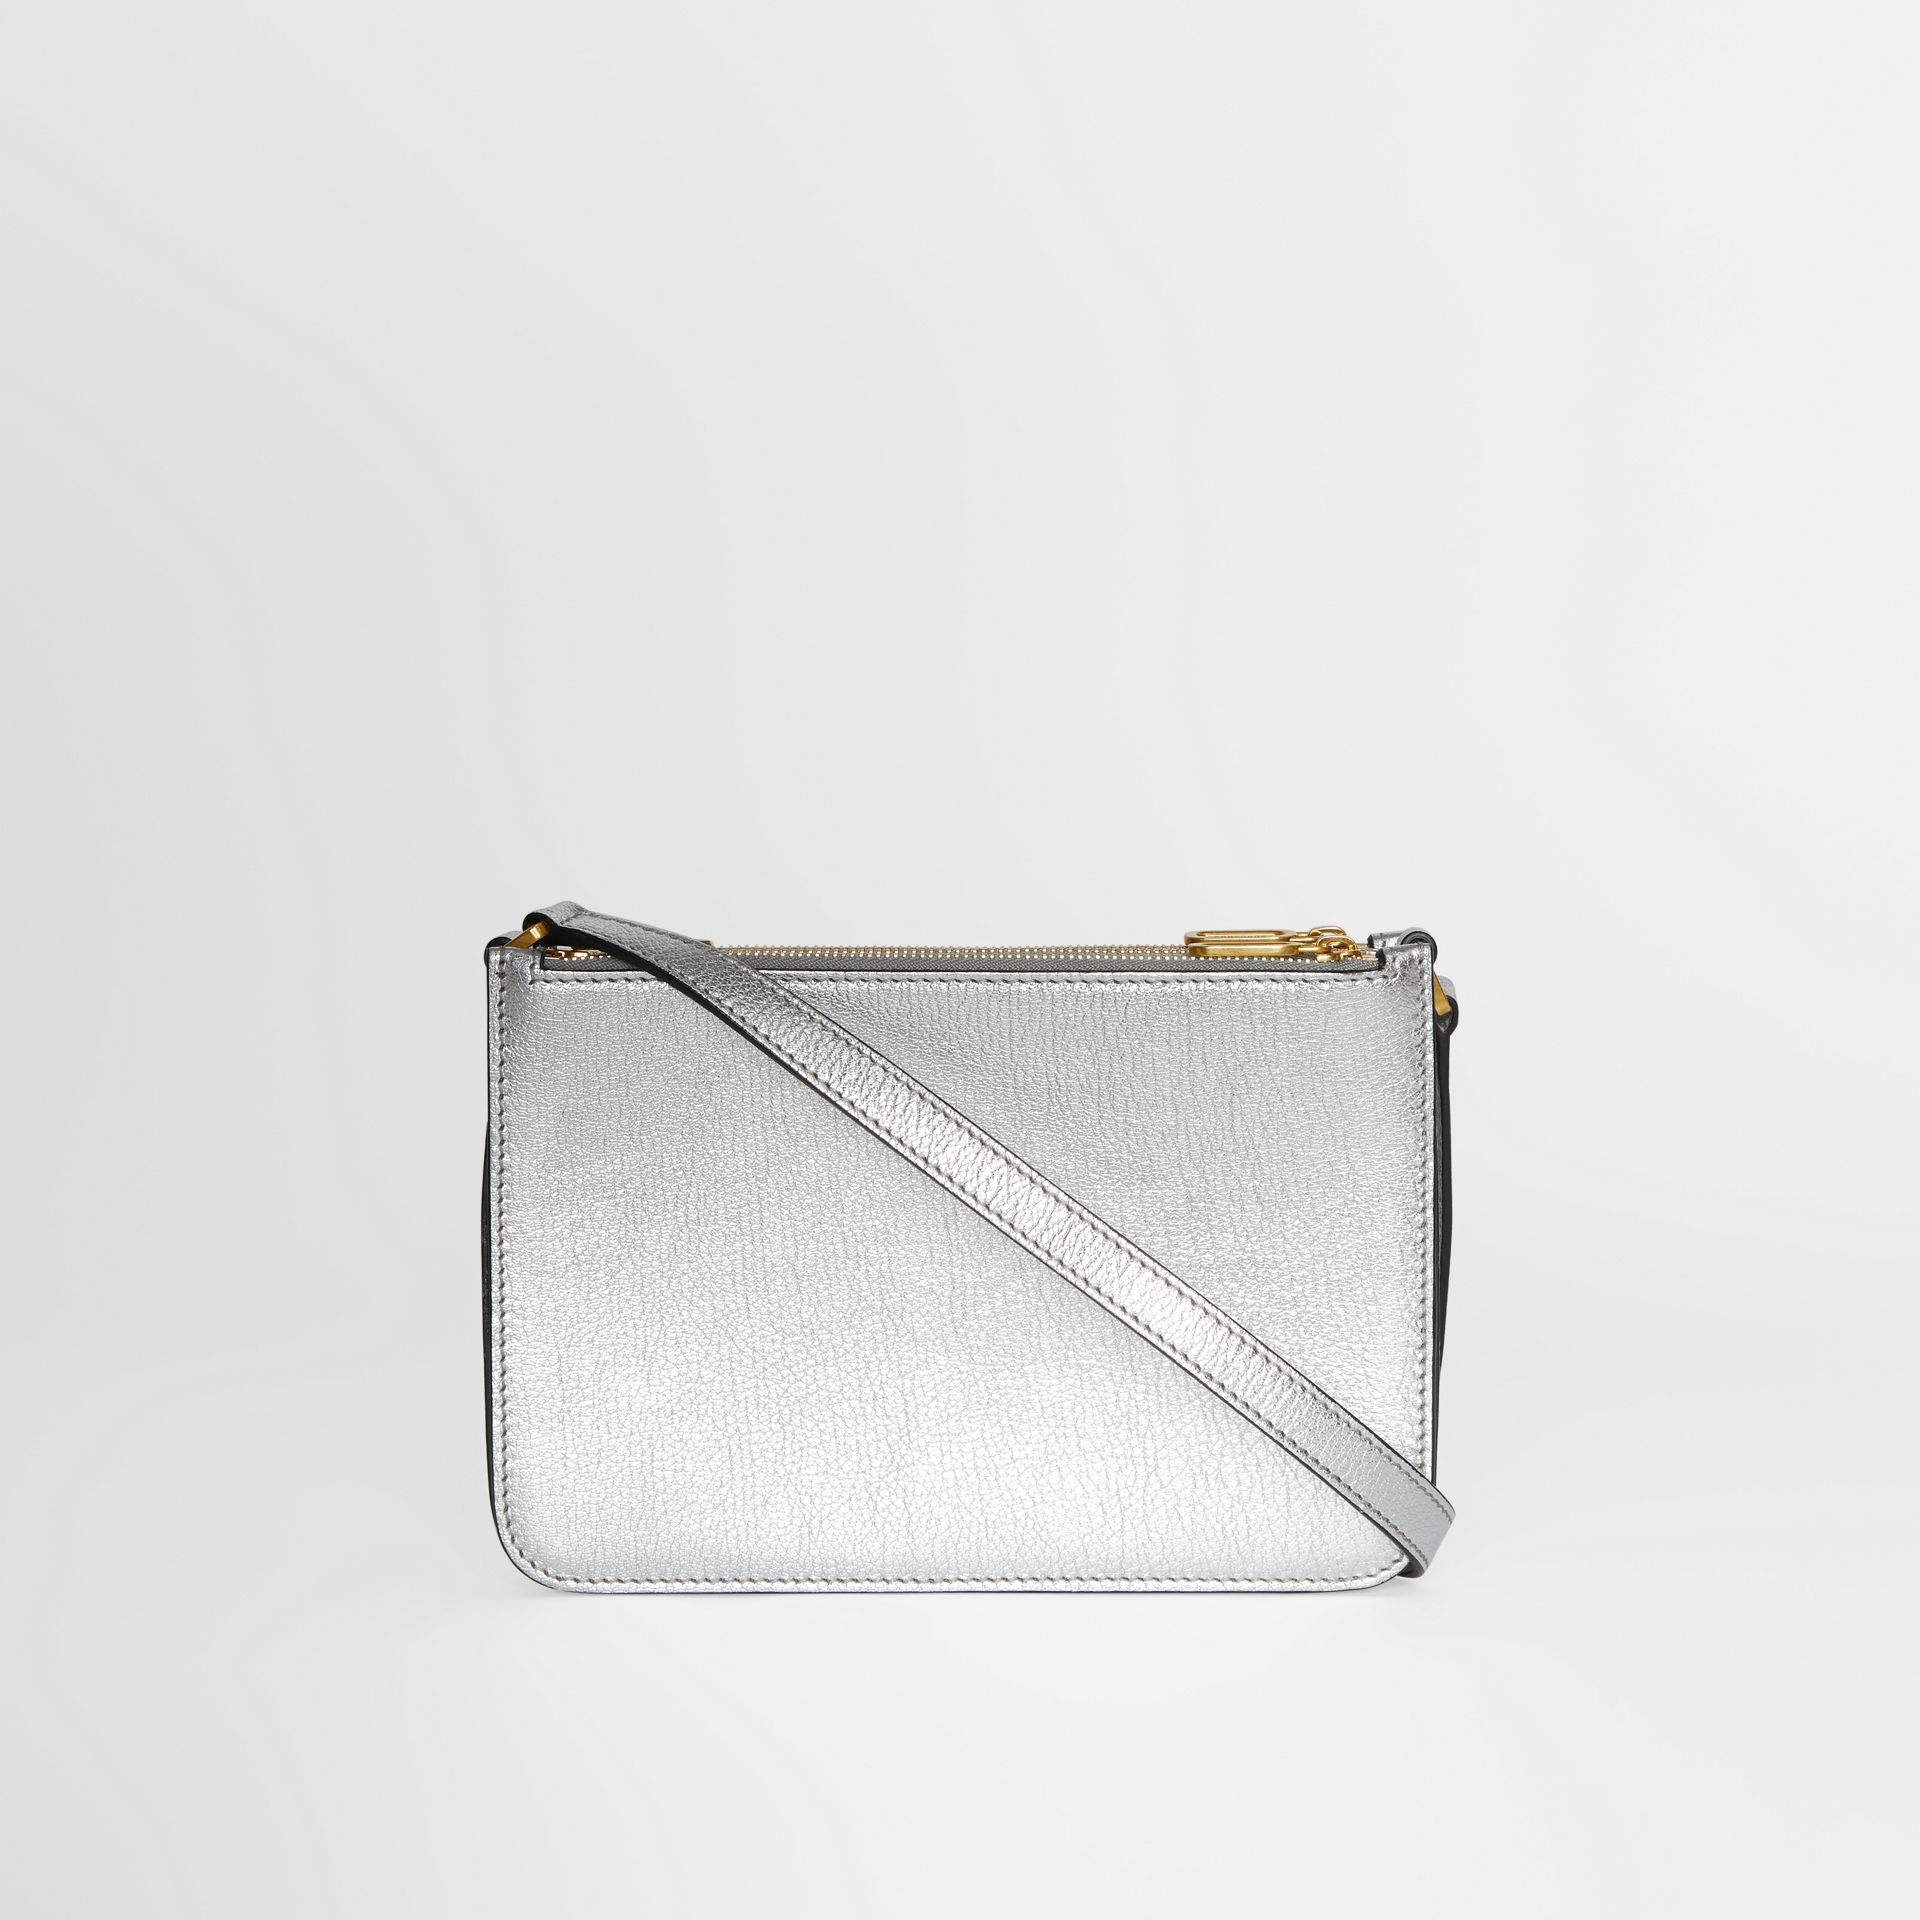 Triple Zip Metallic Leather Crossbody Bag in Silver - Women | Burberry - gallery image 7